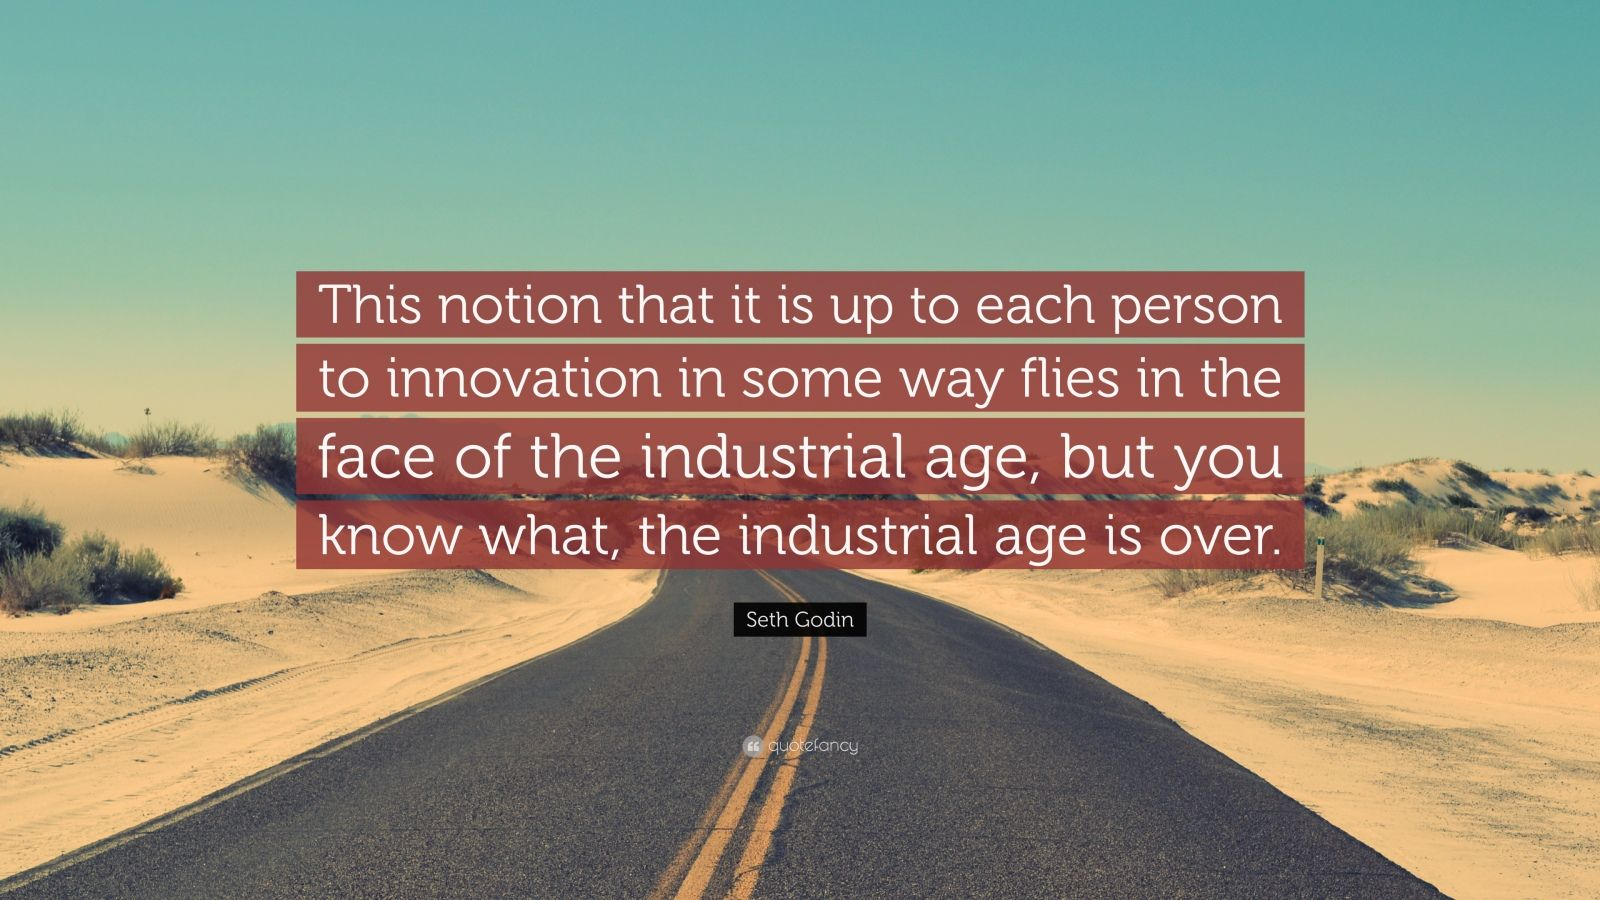 """Seth Godin Quote: """"This notion that it is up to each person to innovation in some way flies in the face of the industrial age, but you know what, the industrial age is over."""""""